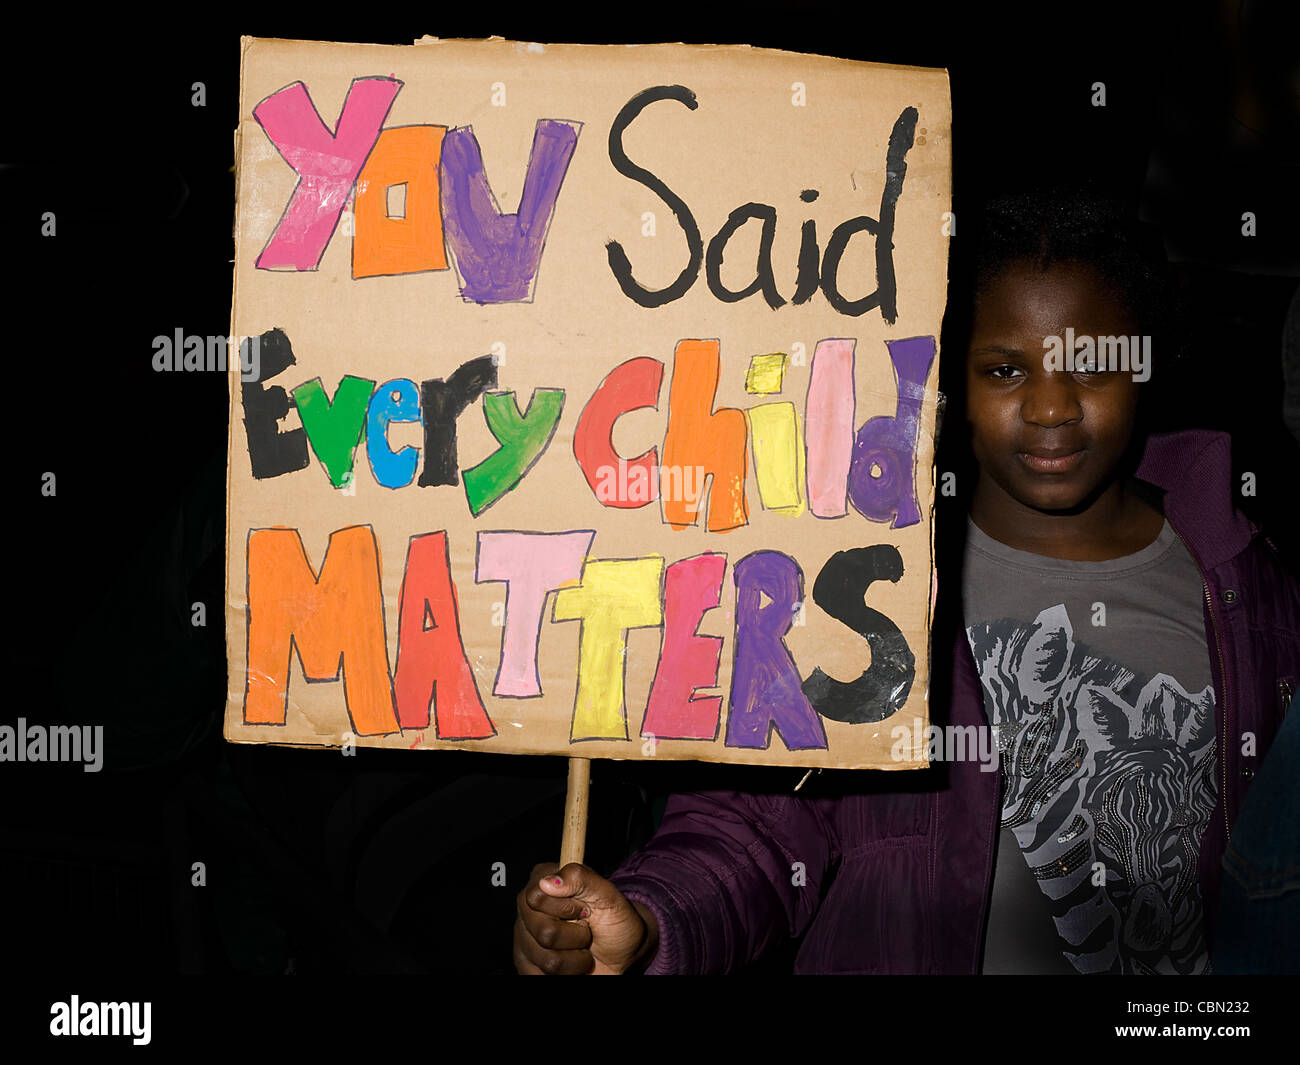 Young black girl hold placard with colorful lettering that reads 'You said Every Child Matters' - Stock Image